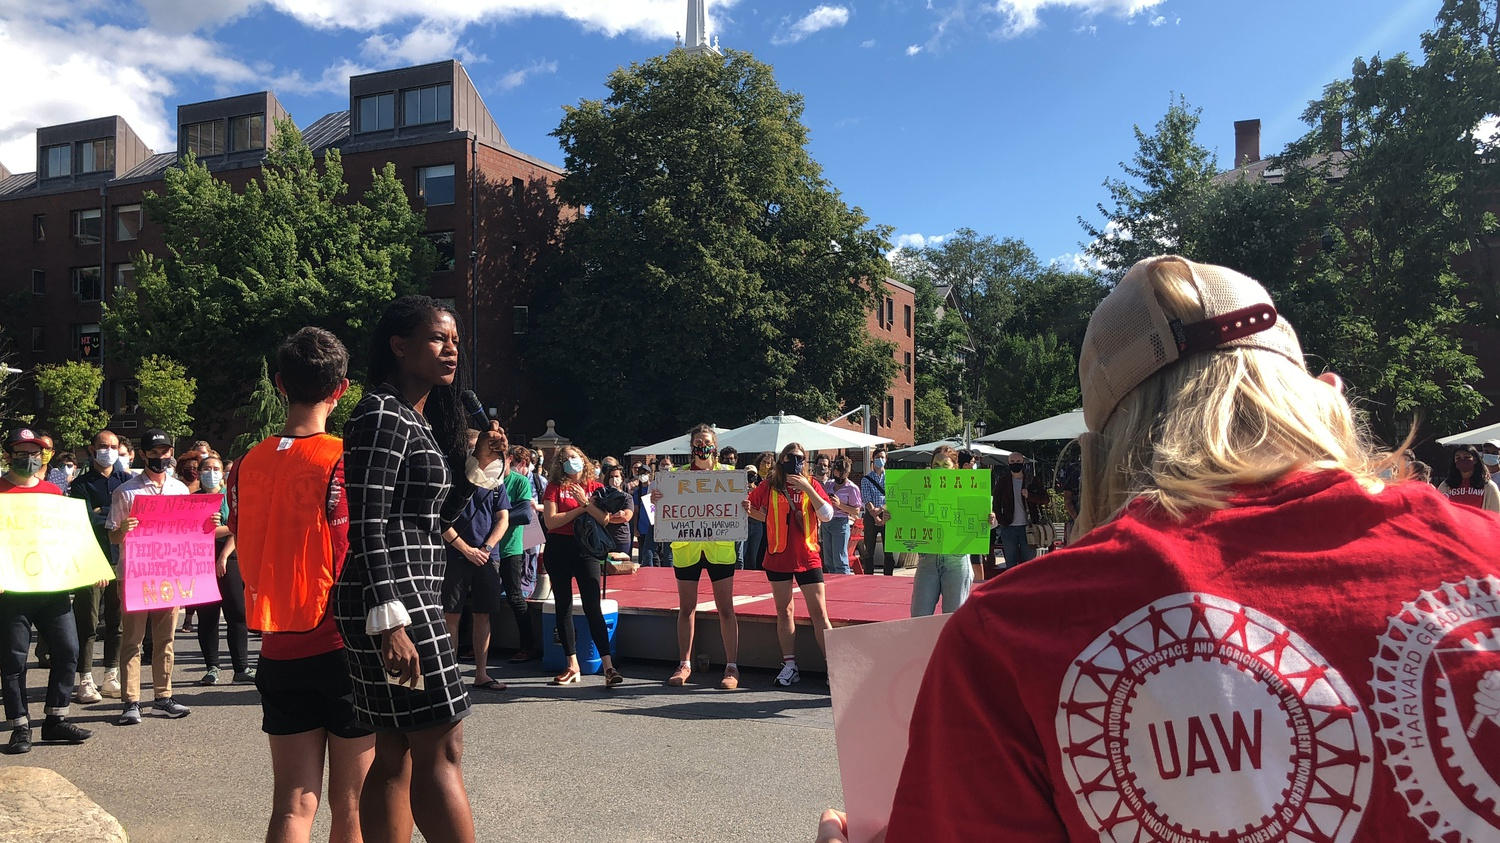 Boston City Councilor Lydia Edwards speaks at a rally for Harvard's graduate student union on Friday.